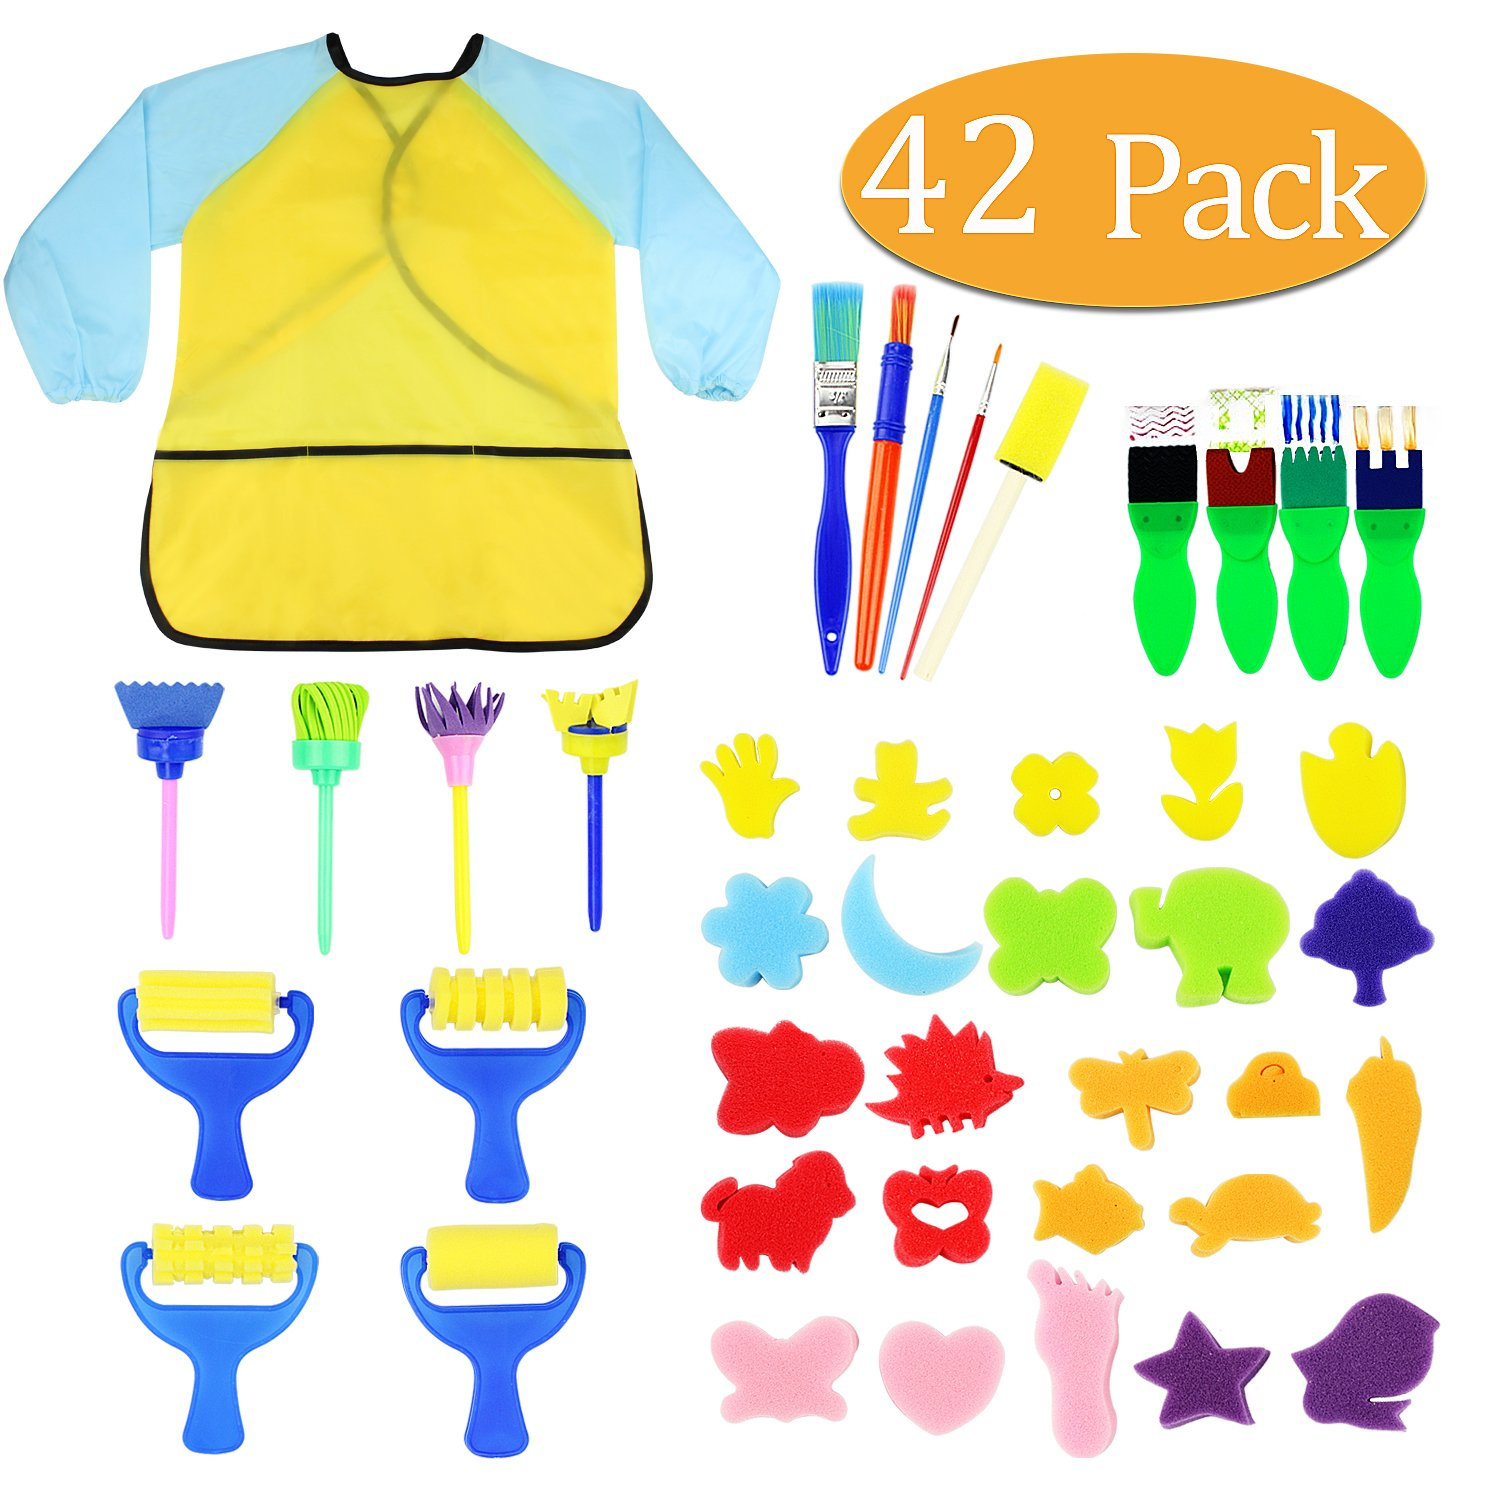 vorey Kids Early Learning Sponge Painting Brushes Kit, 42 Pieces Sponge Drawing Shapes Paint Craft Brushes for Toddlers Assorted Pattern, Including Children Waterproof Art Painting Smock Apron